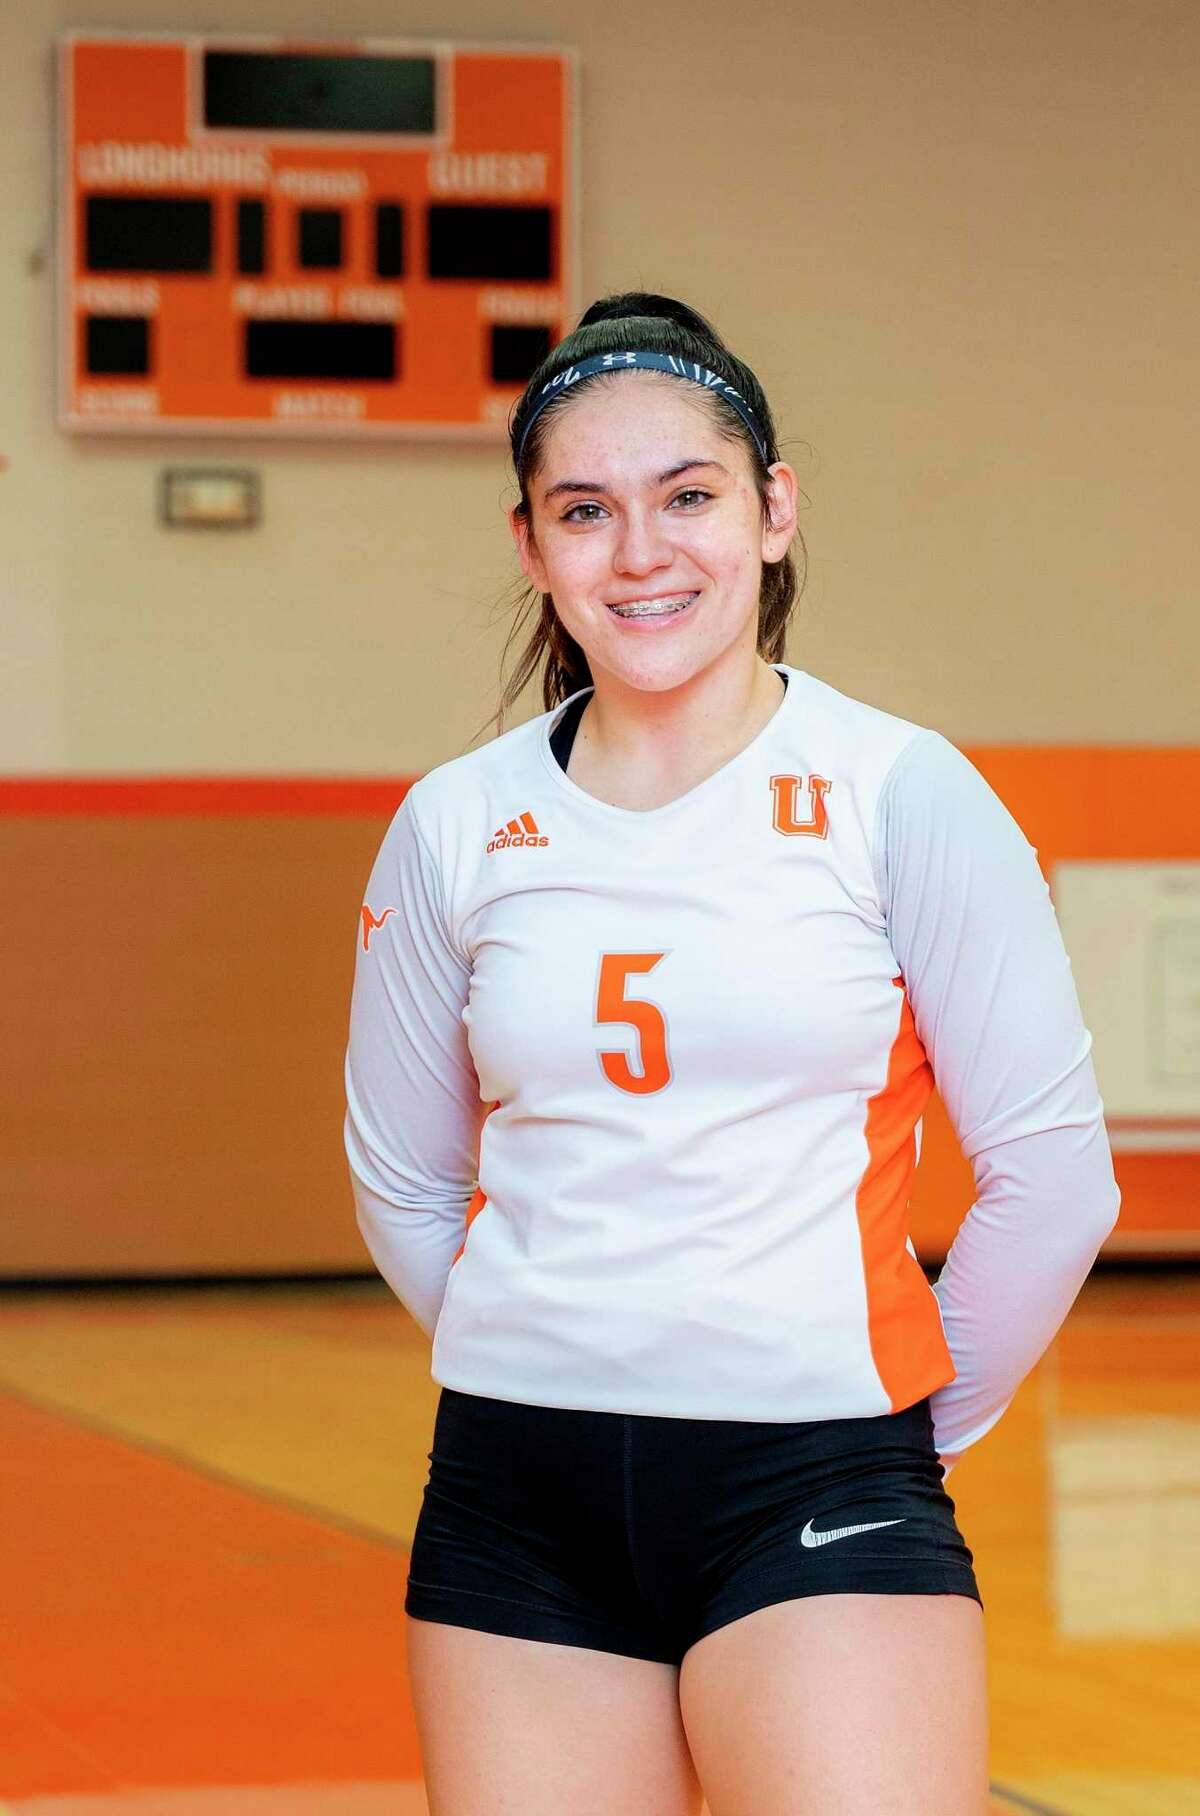 United junior setter Erika Peimbert is averaging a city-high 22 assists per game to help the Lady Longhorns build a 7-1 start to the season.